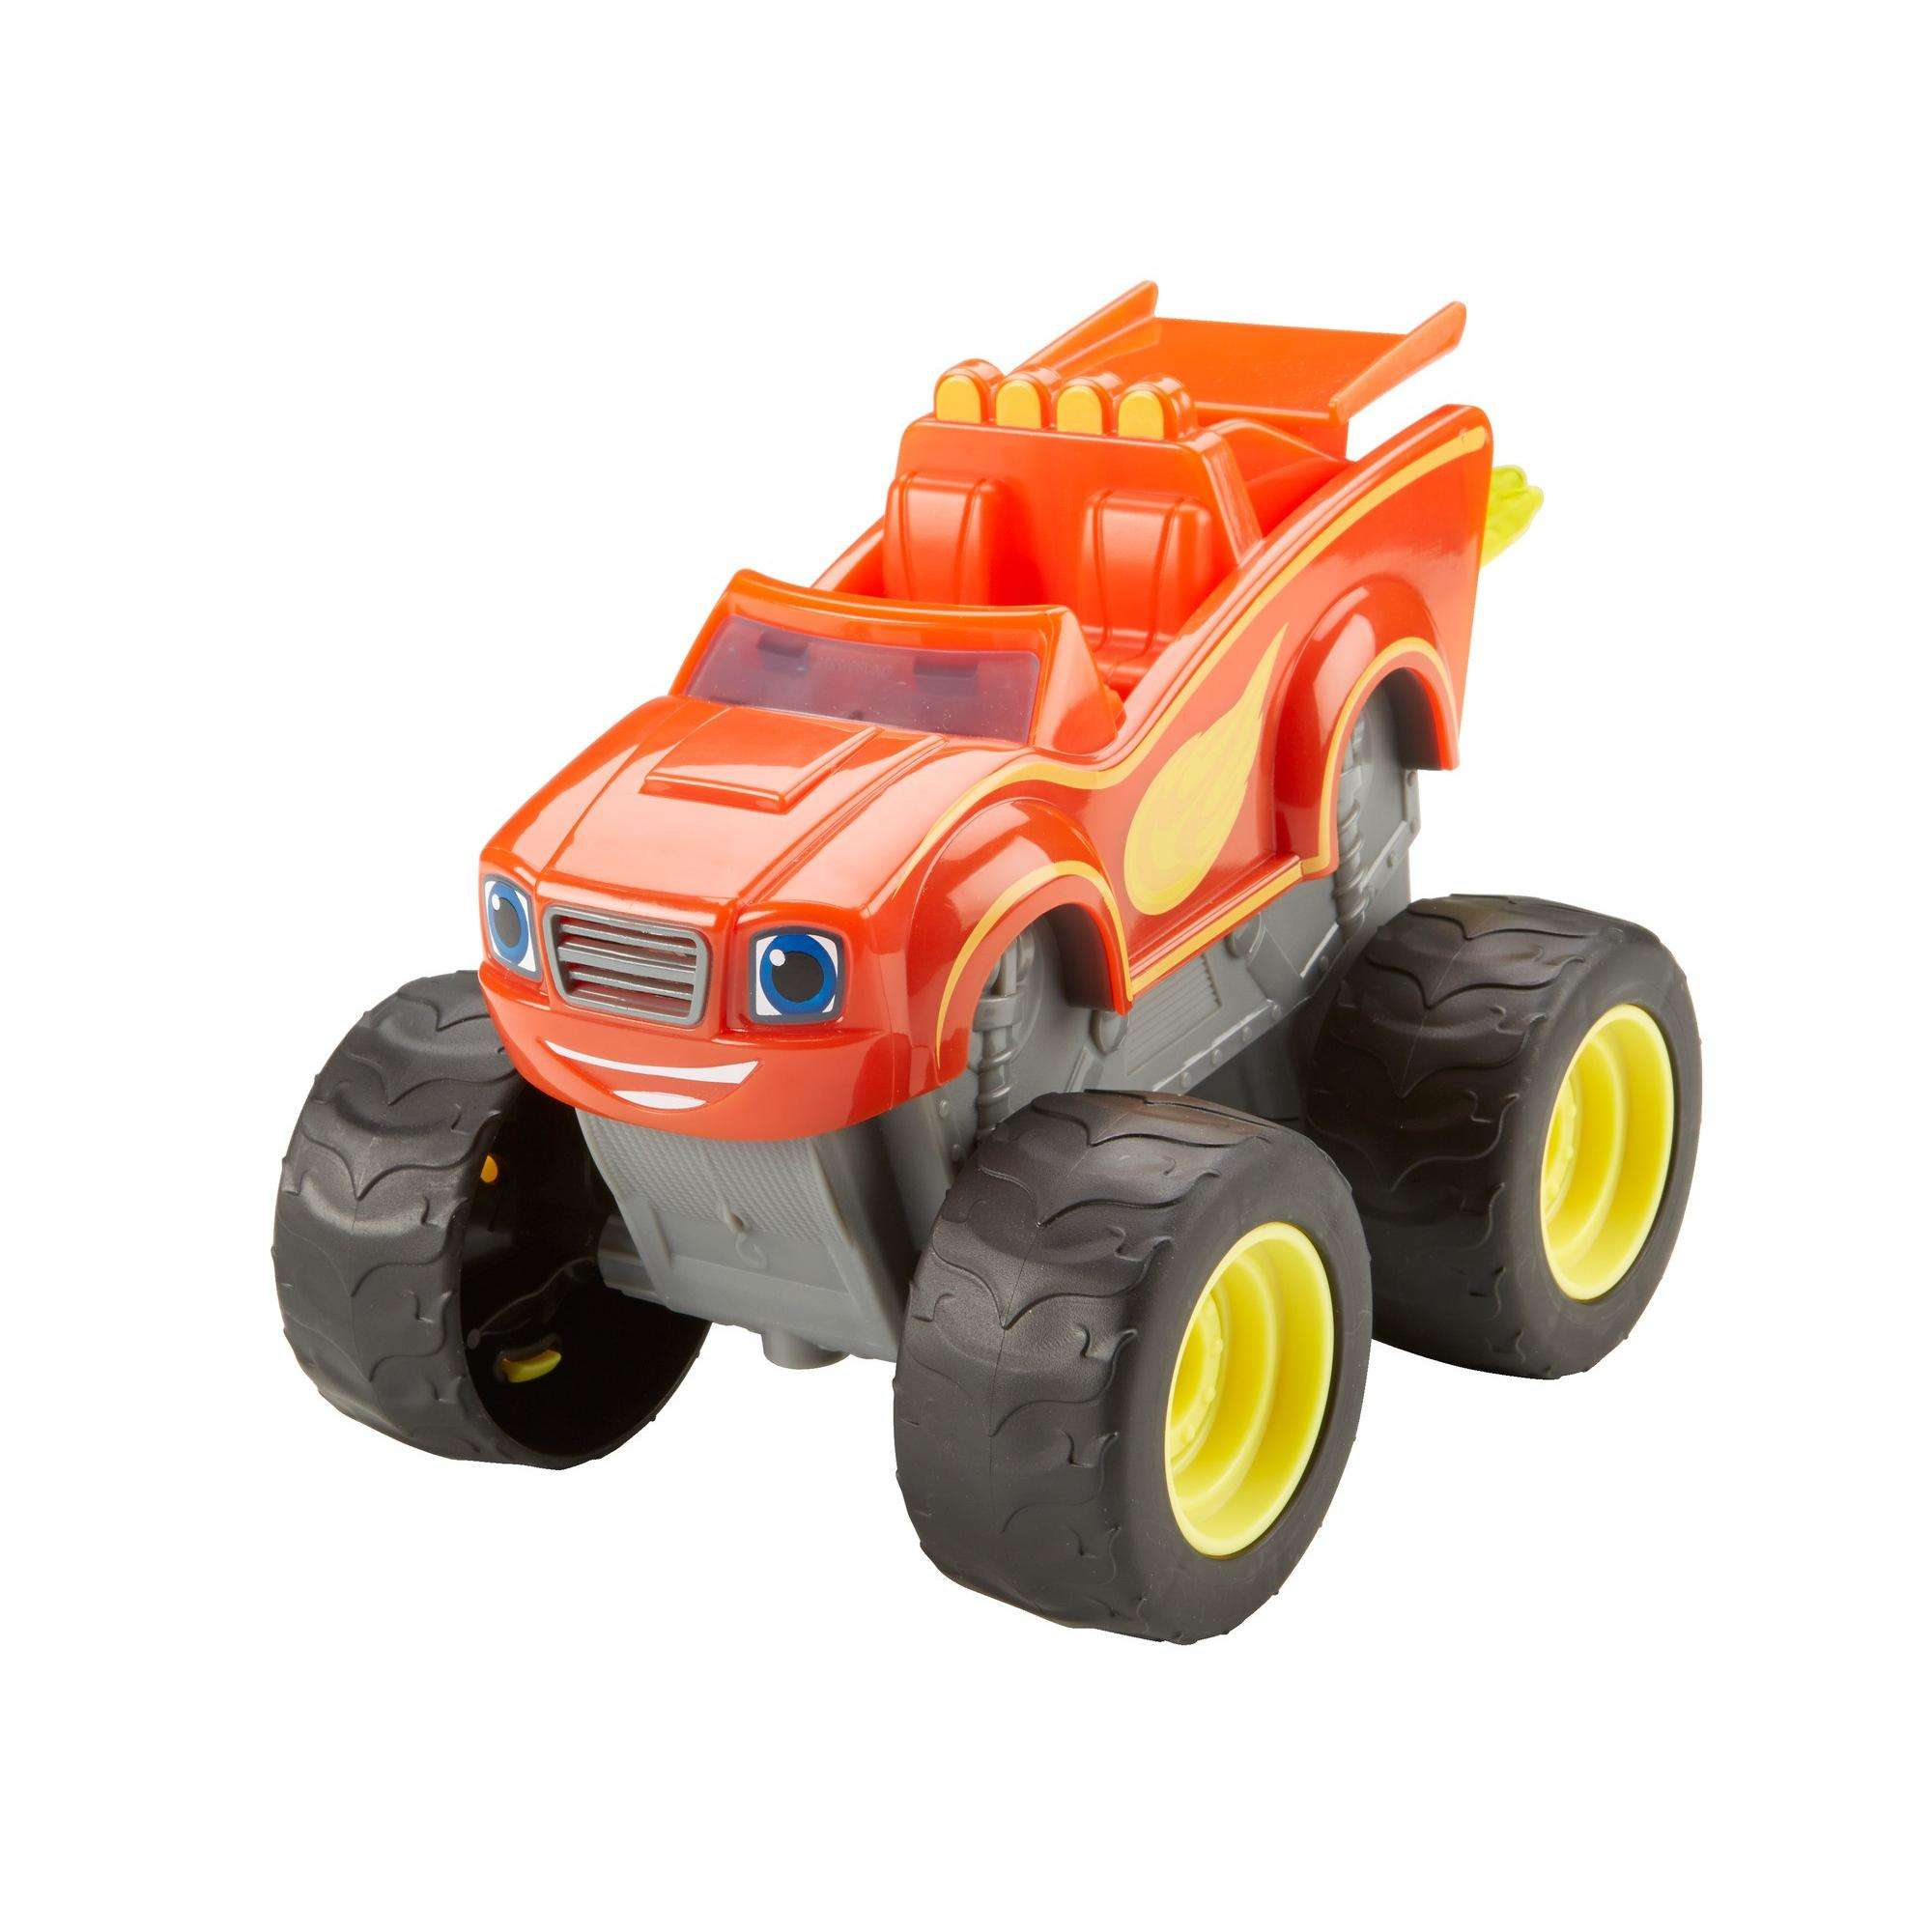 Nickelodeon Blaze and the Monster Machines Blazing Speed Lights Blaze by FISHER-PRICE BRANDS A DIVISION OF MATTEL DIRECT IMPORT INC